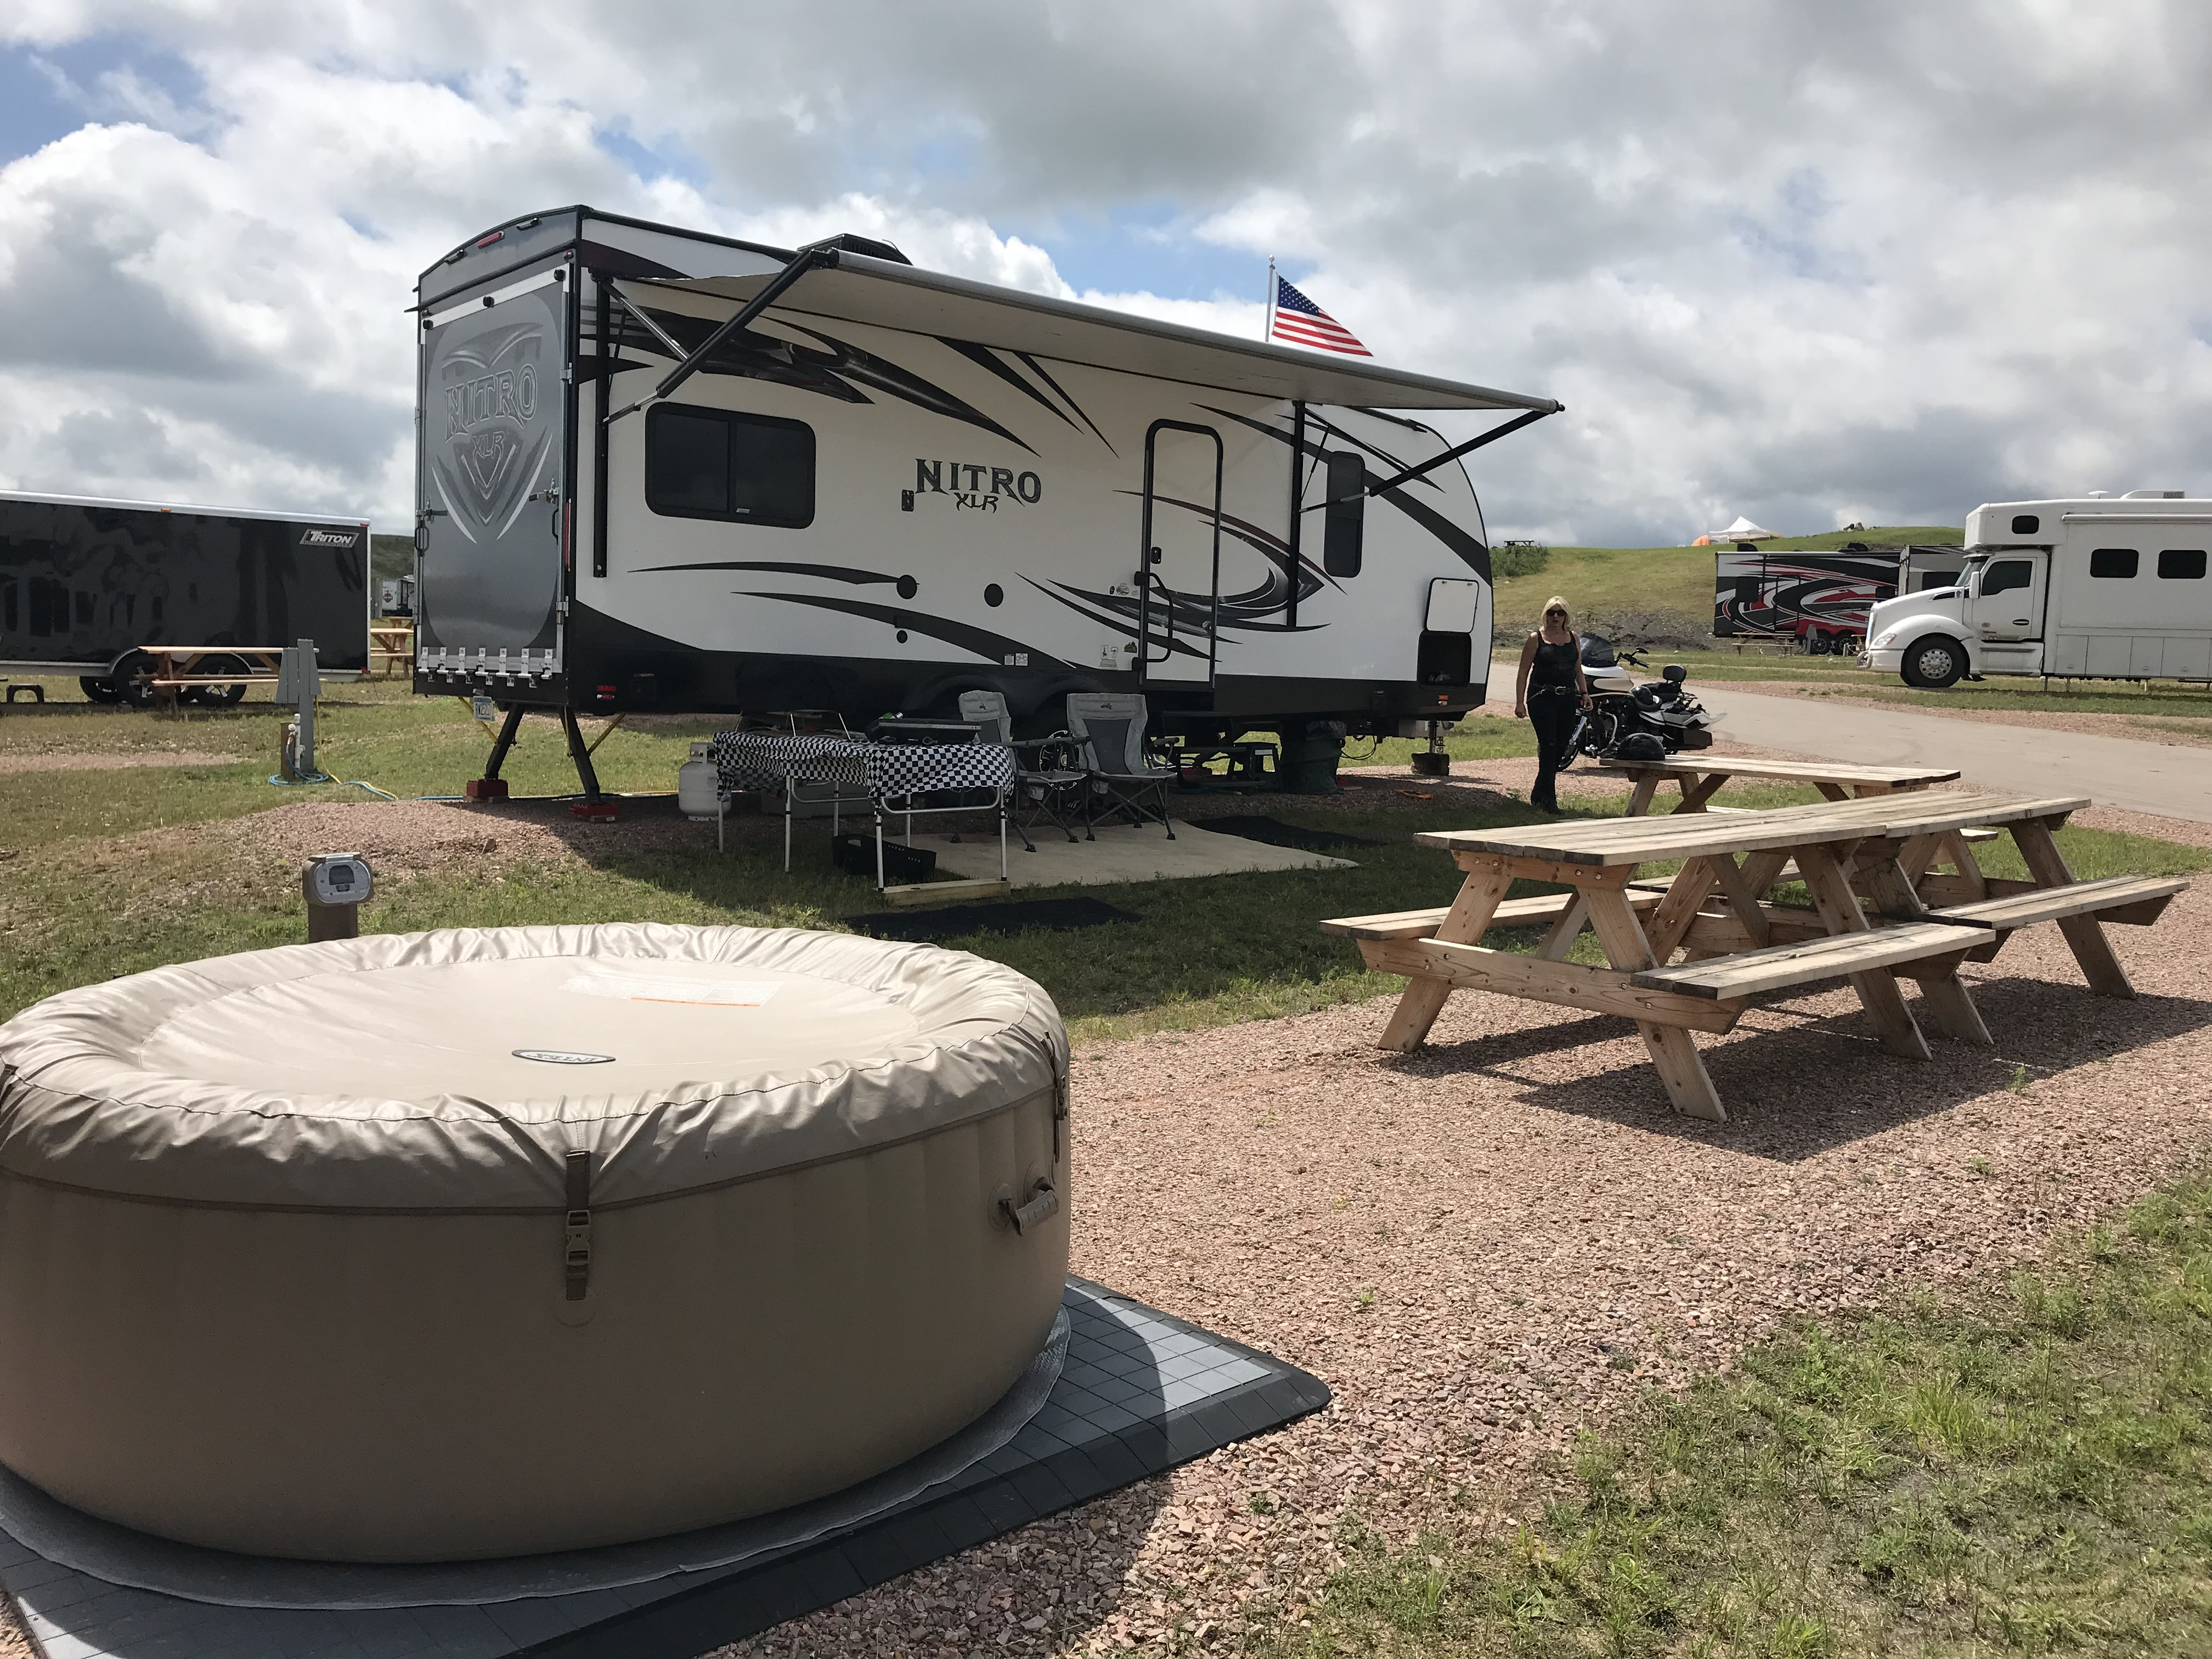 2017 Forest River Nitro Xlr Motor Home Caravane Rigide à Double Essieux Rental In Lindstrom Mn Outdoorsy